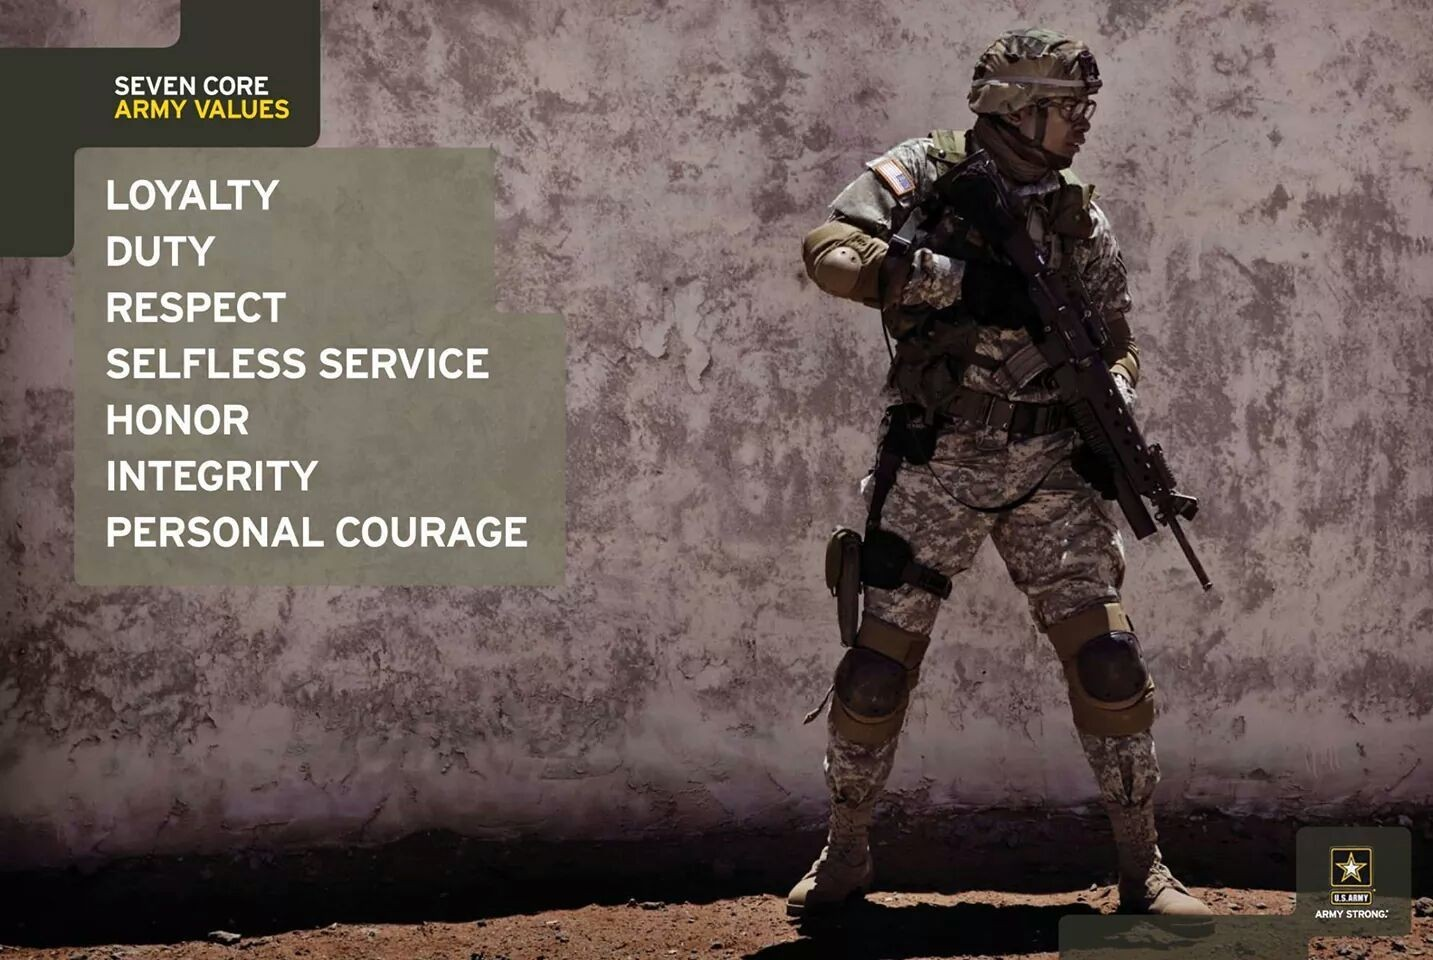 We strive to instill these values in all we do.